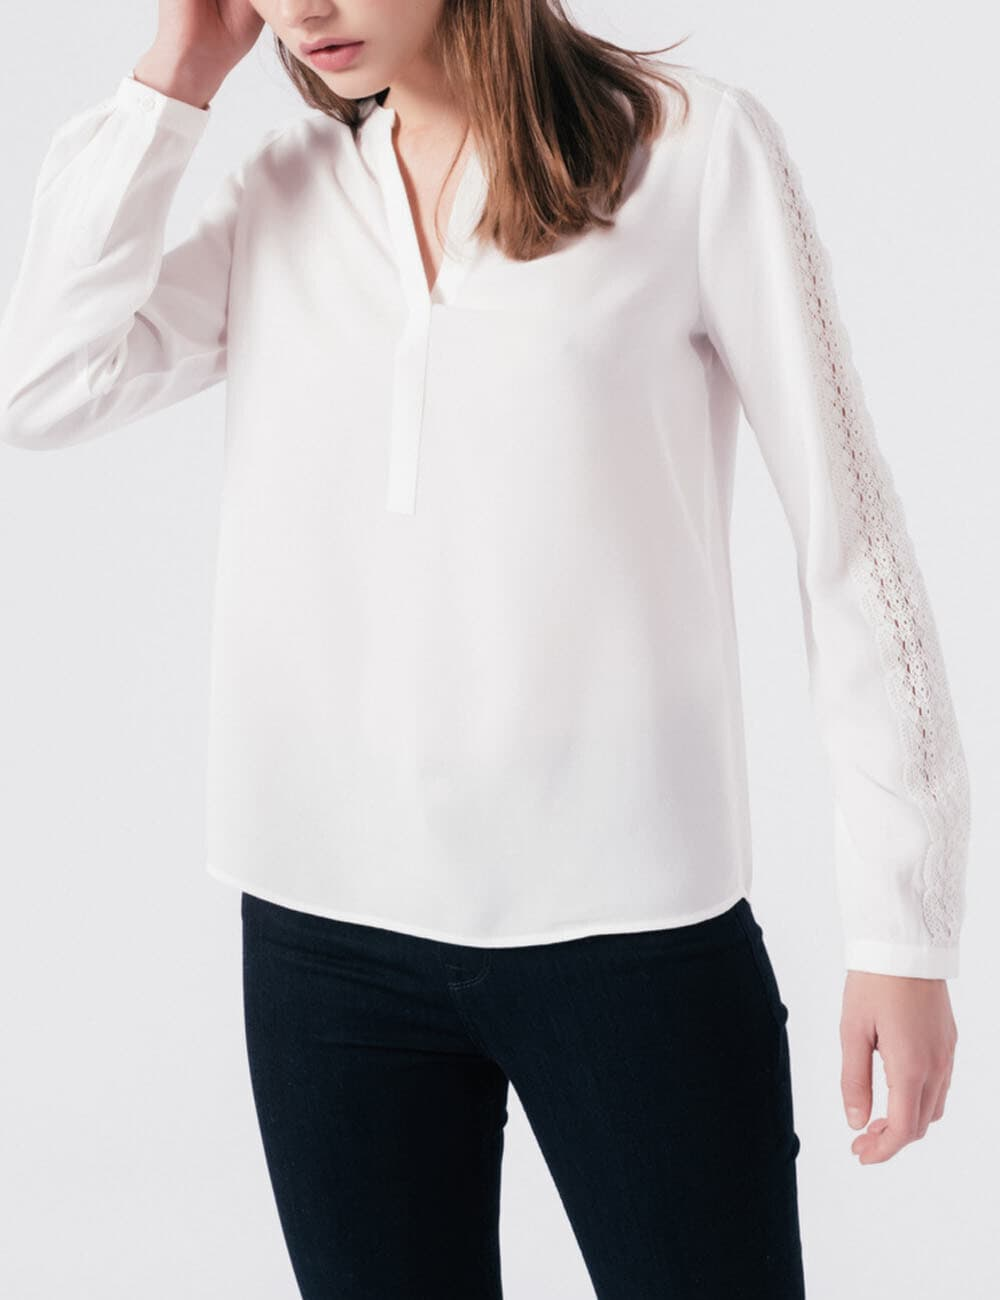 Chemise Cariche : Broderie Anglaise